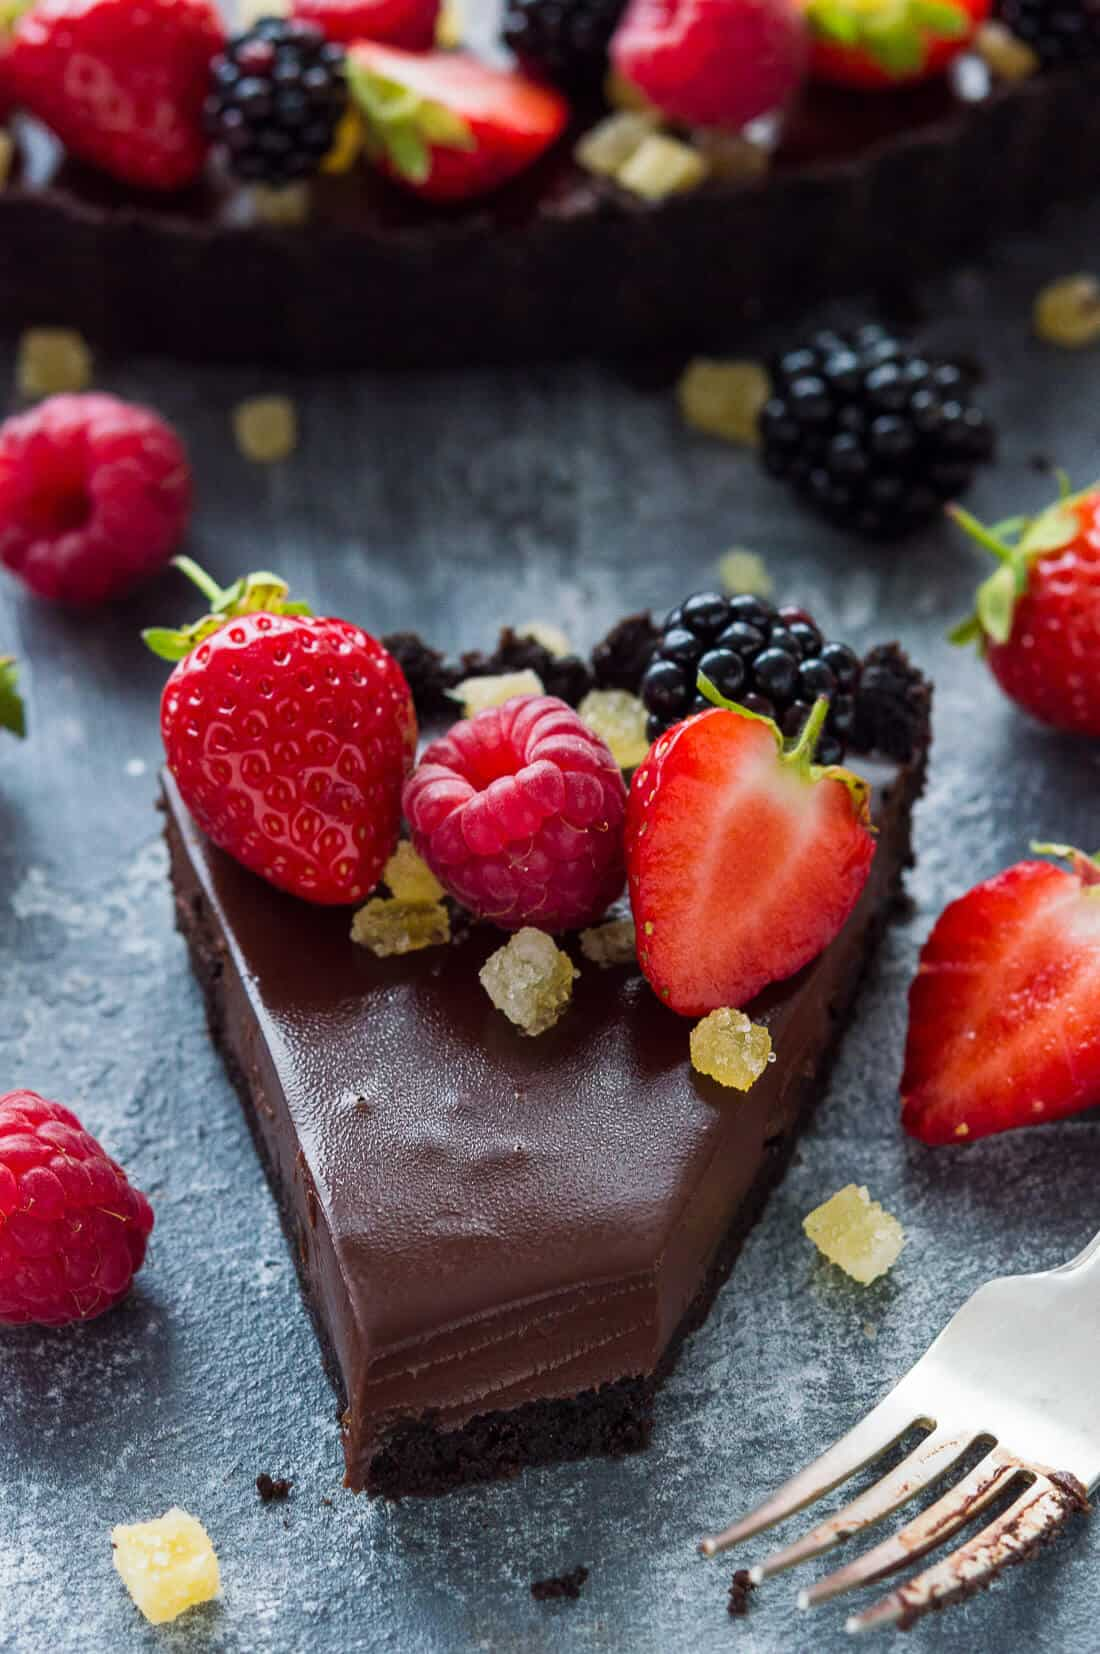 A slice of no-bake vegan chocolate tart with stem ginger - an Oreo biscuit base filled with coconut milk chocolate gananche and stem ginger.